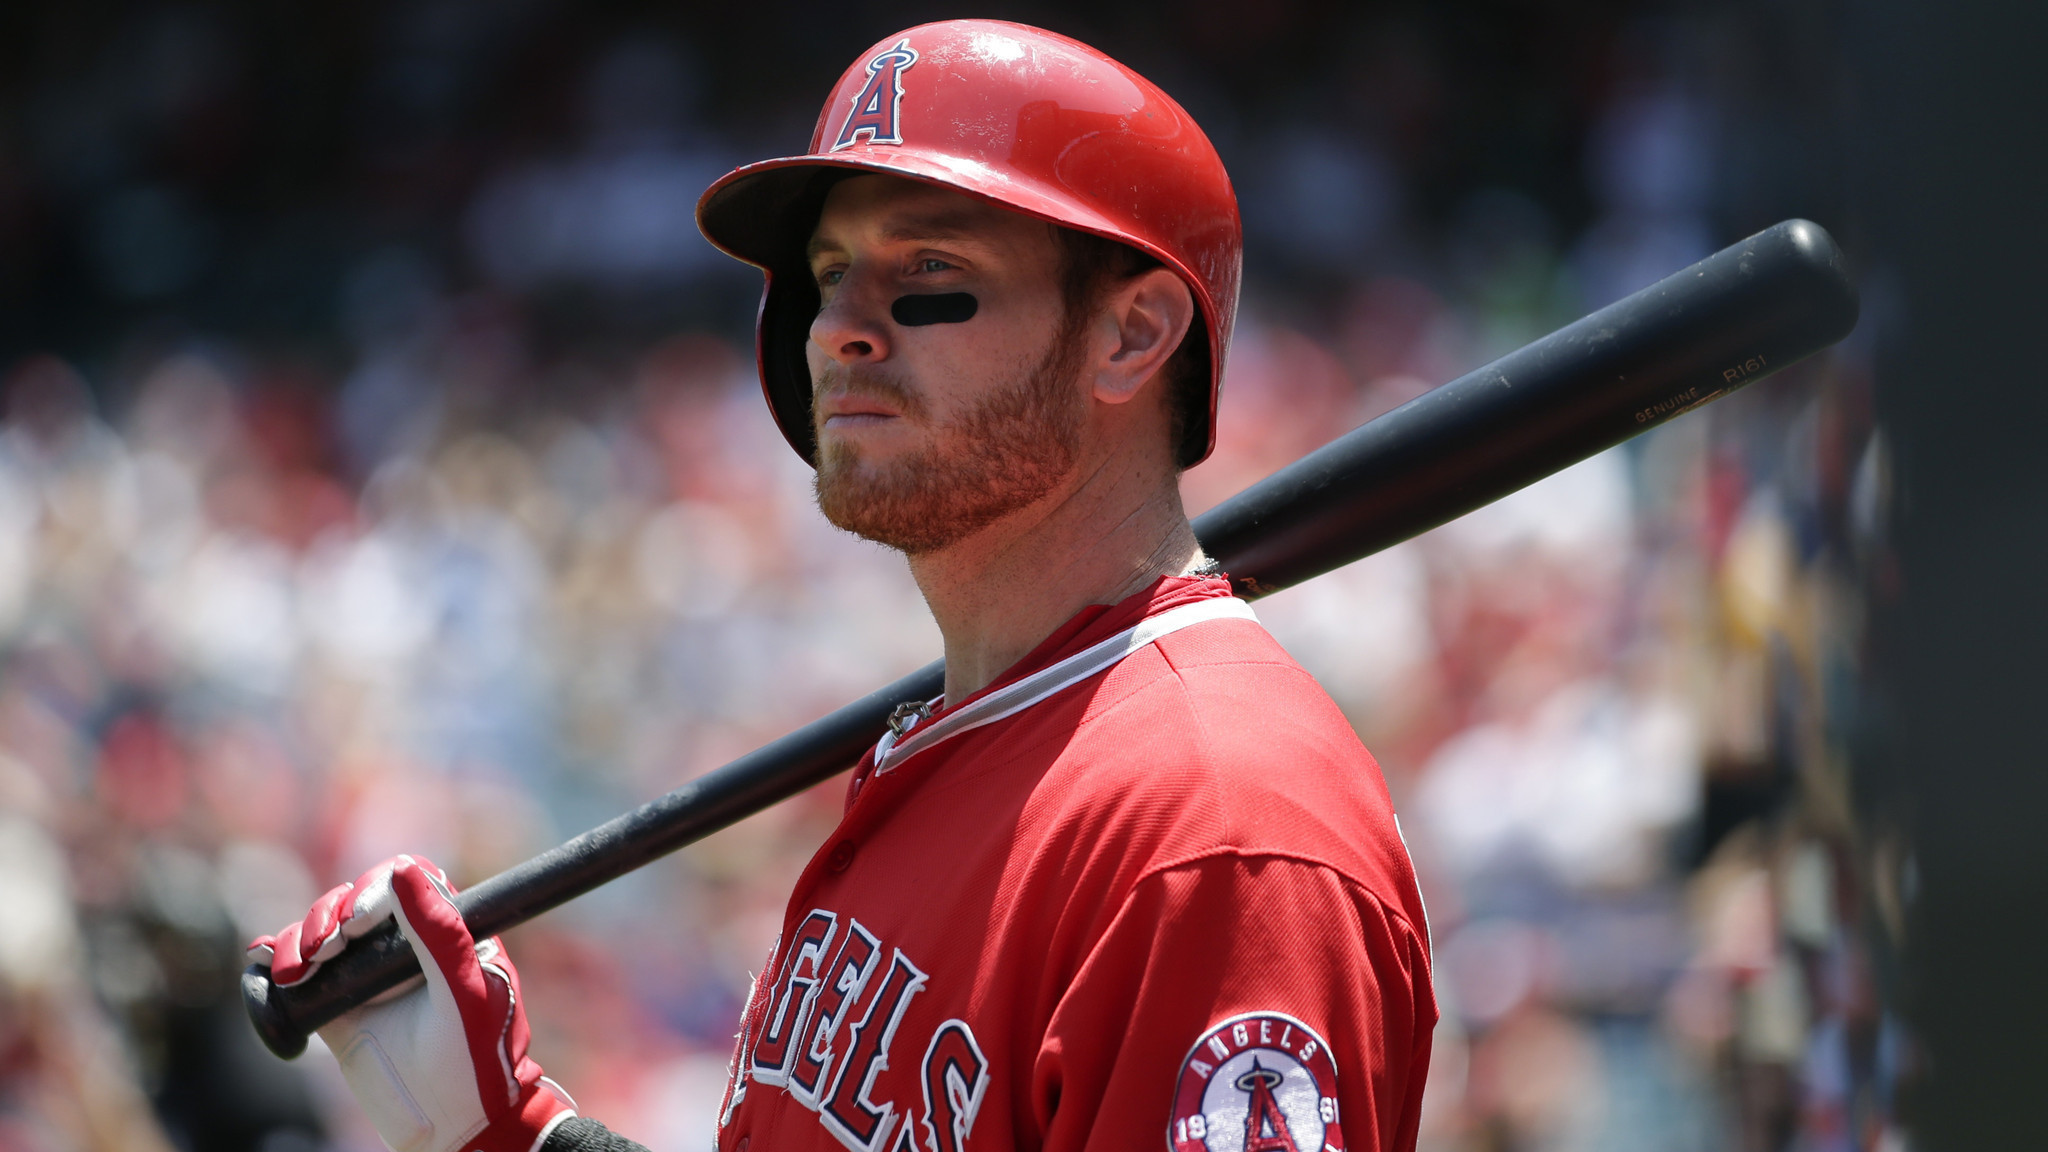 Josh Hamilton losing his clout in cleanup spot, and Angels lose game